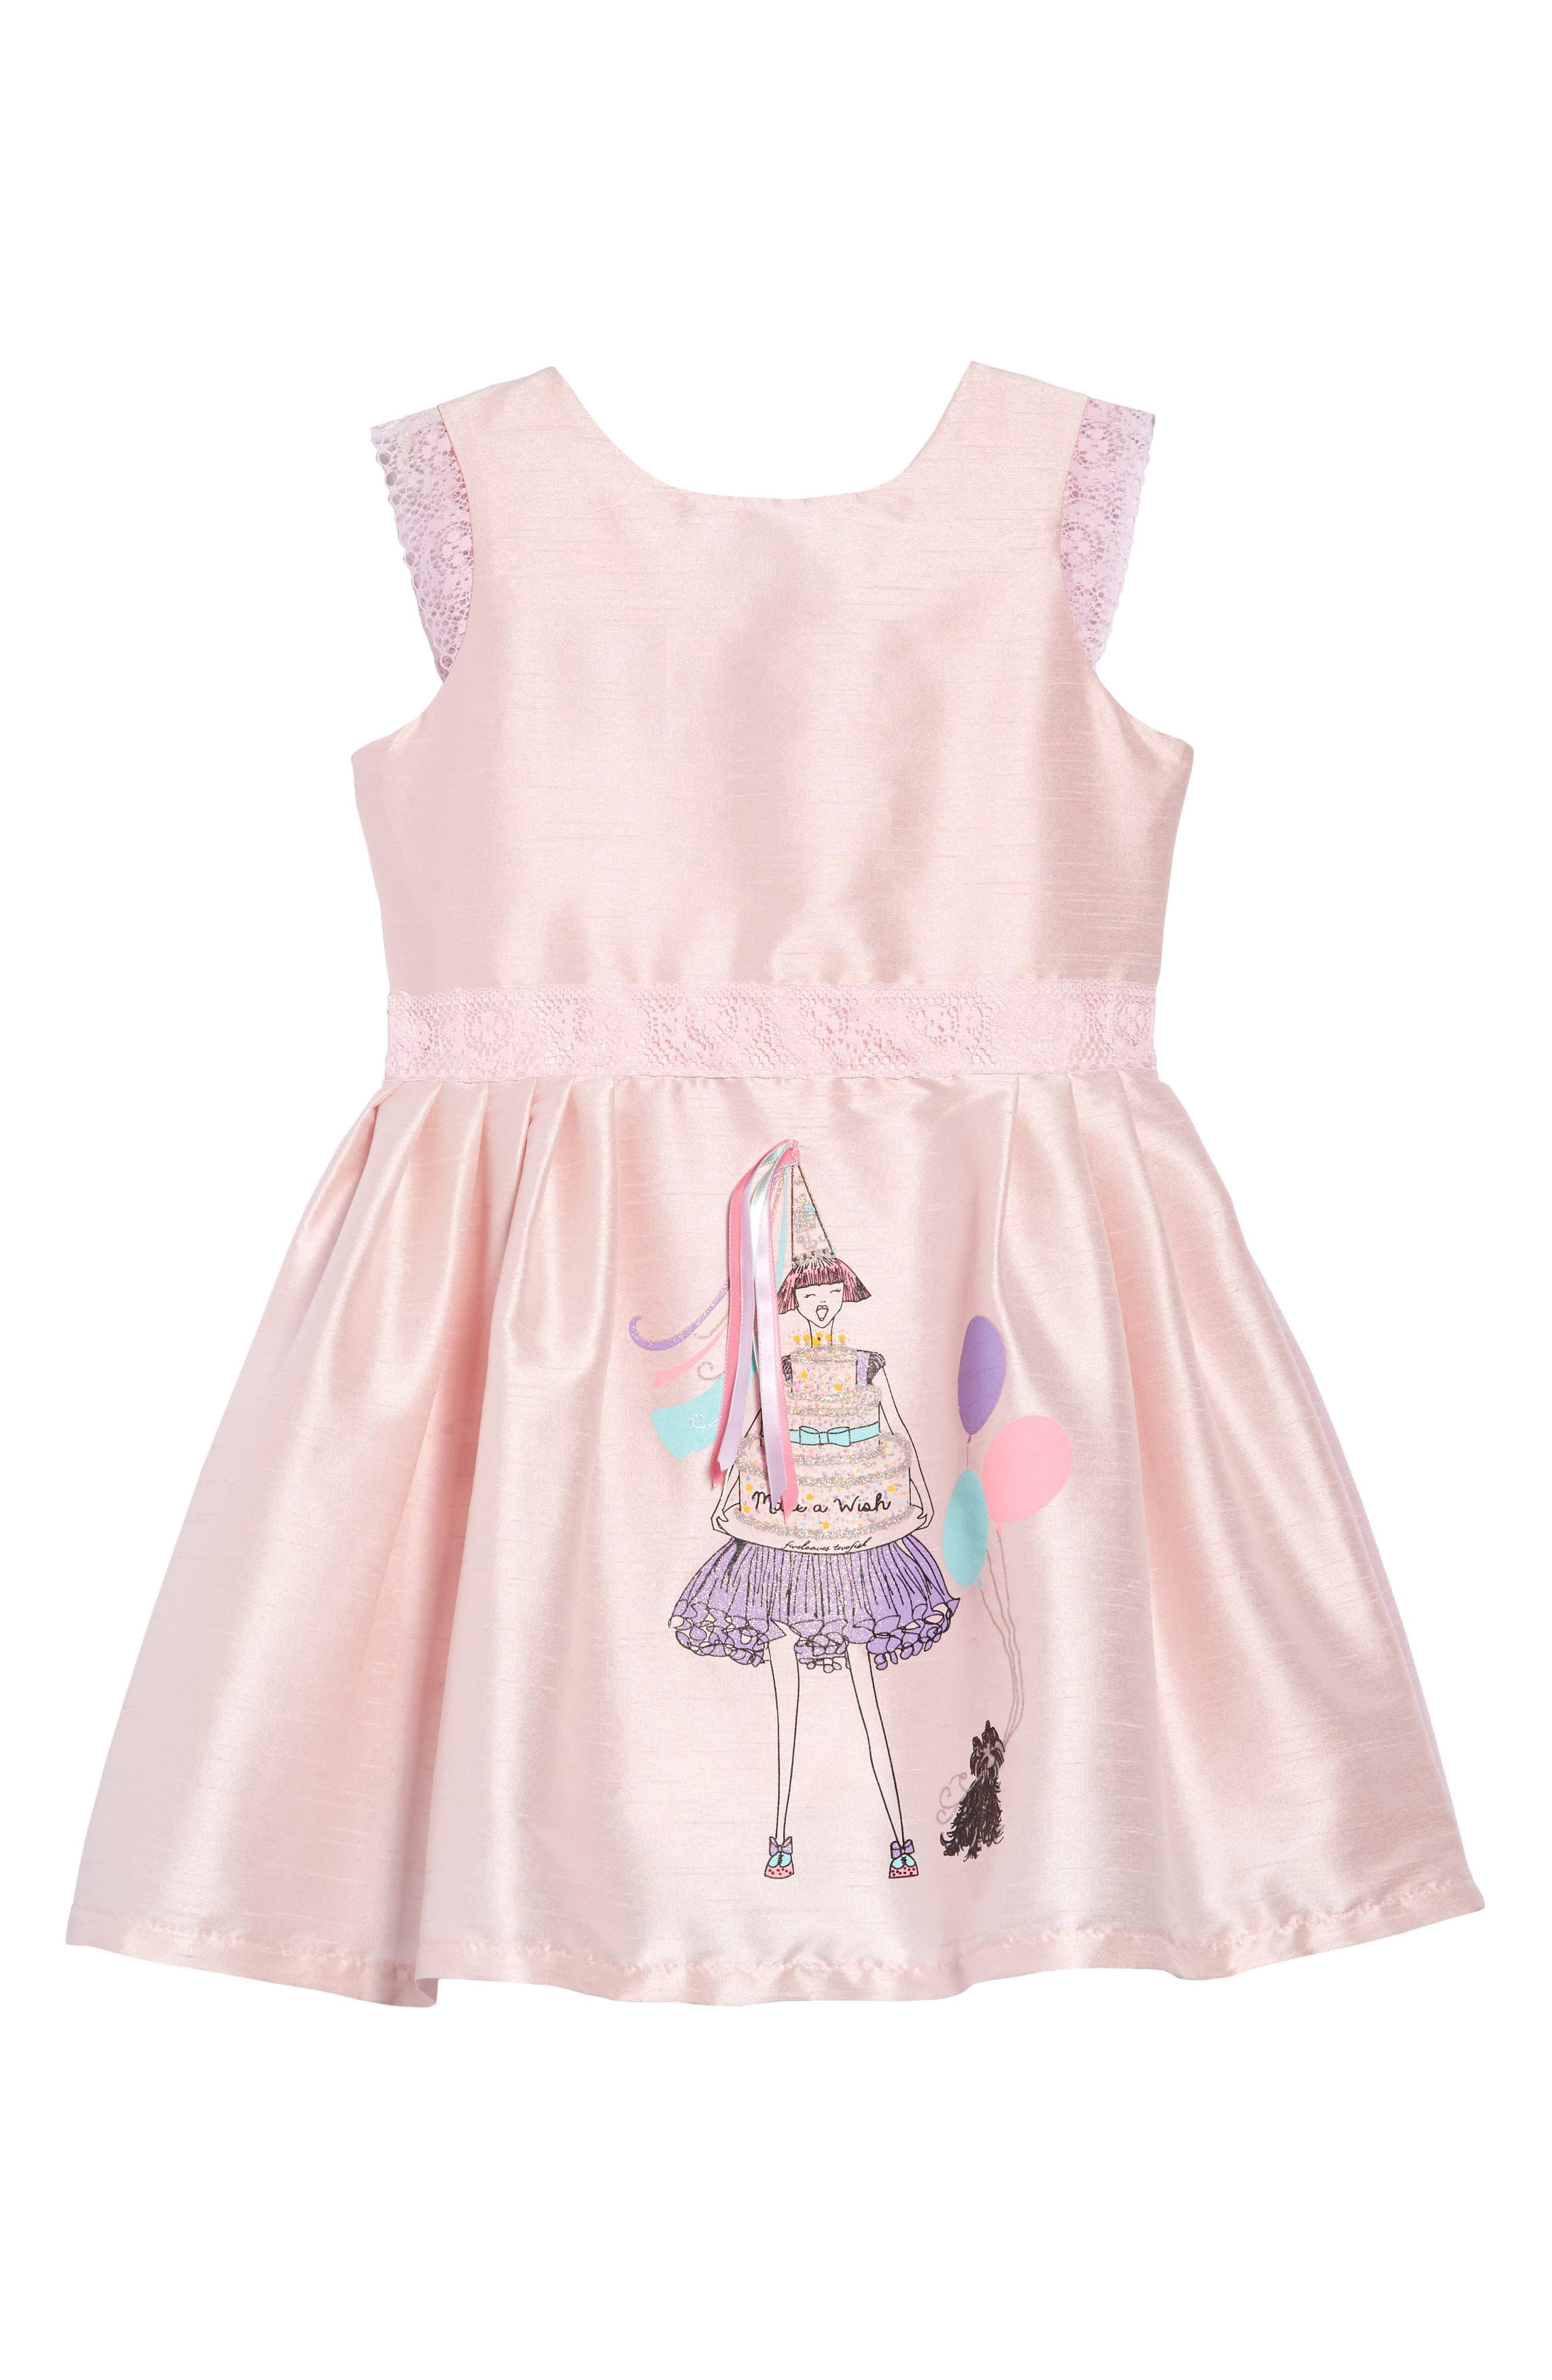 e53a2926befb Girls' Fiveloaves Twofish Clothing and Accessories | Nordstrom